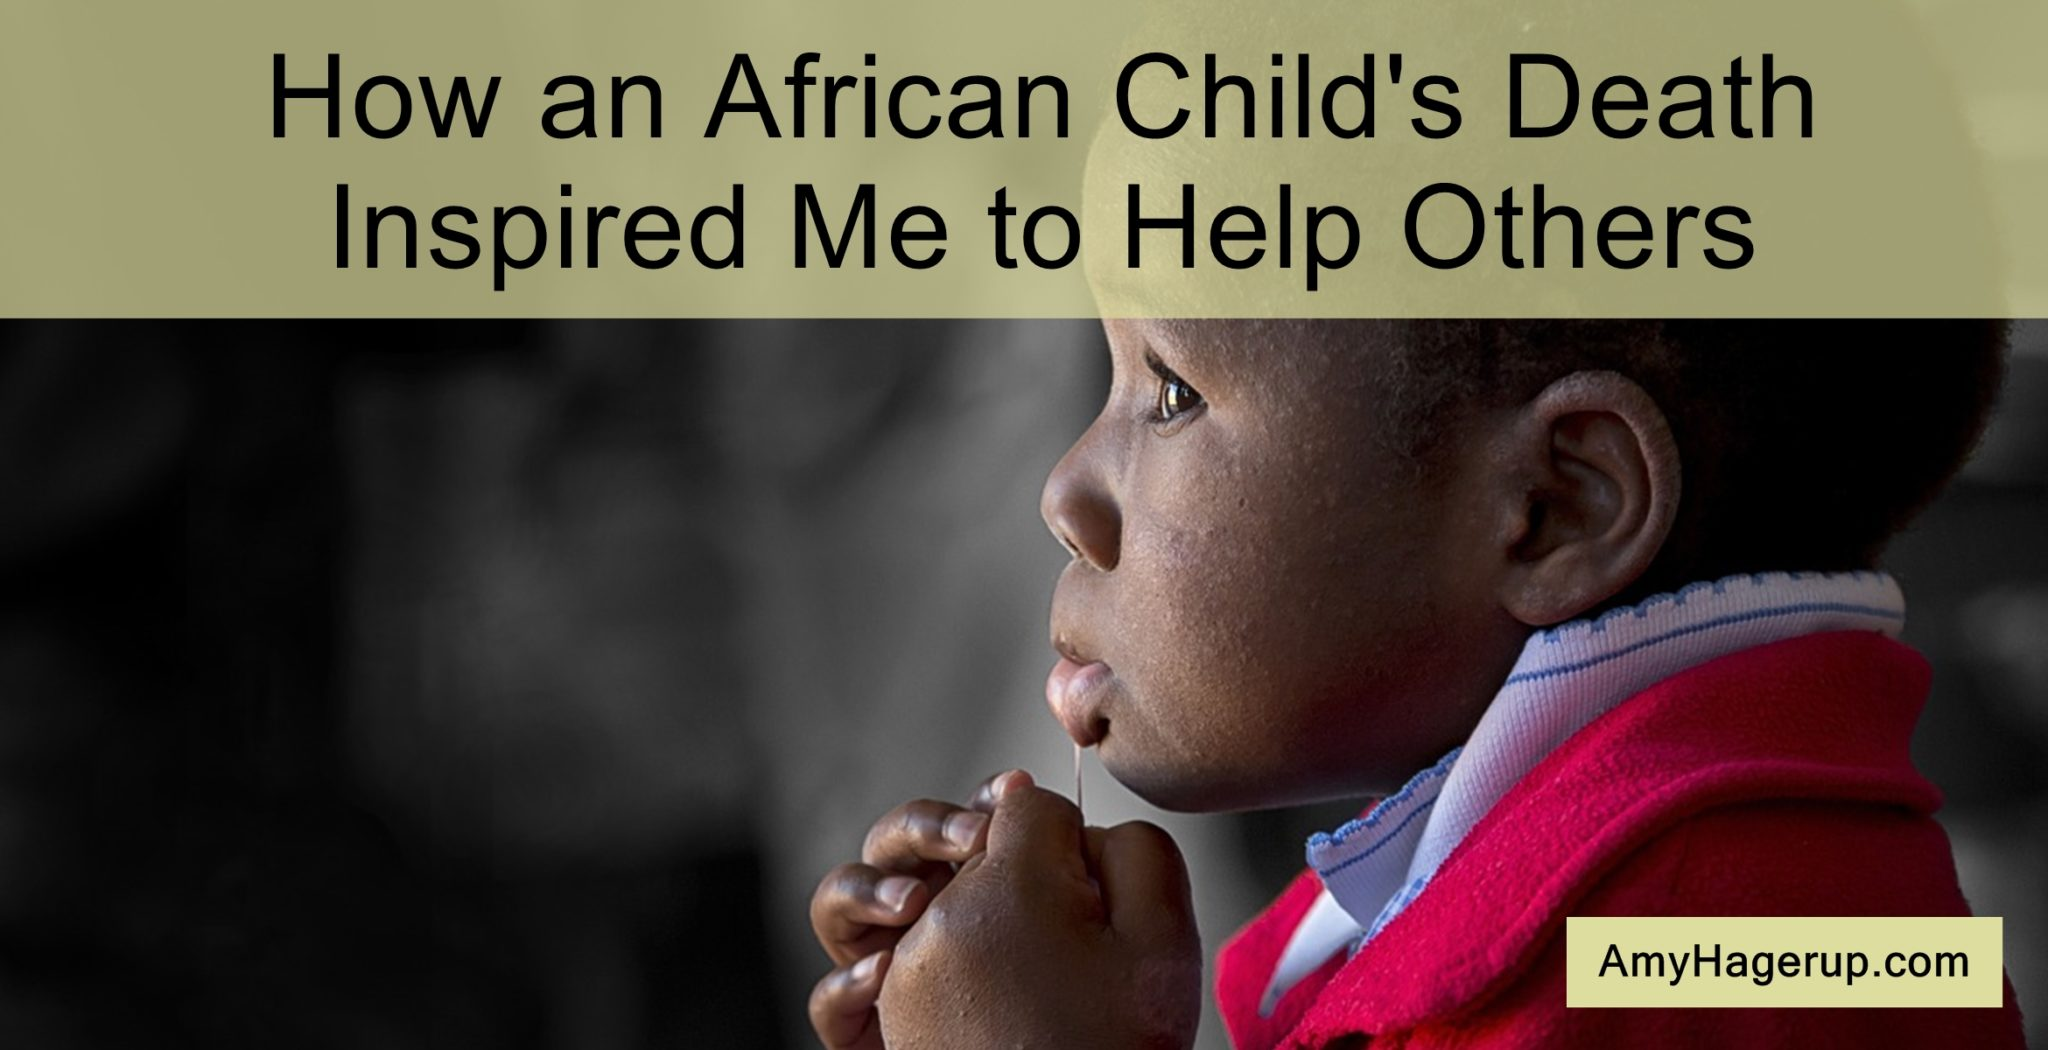 Check out how an African child's death inspired me to help others.